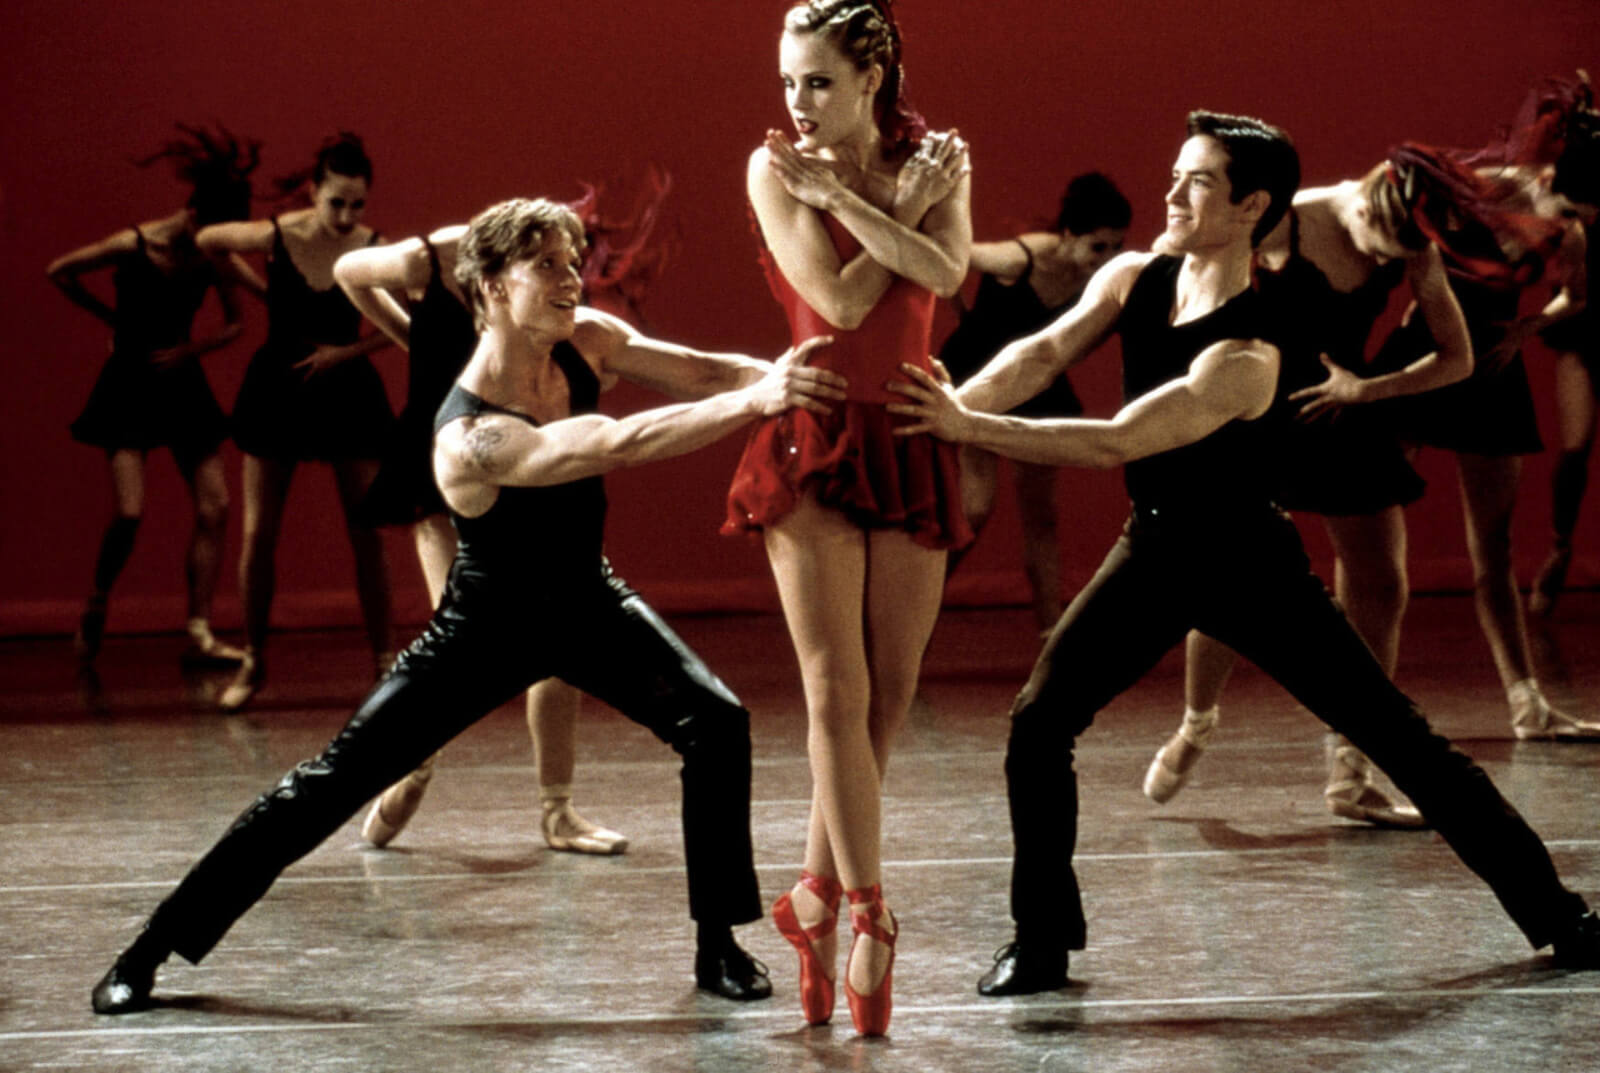 """Ethan Stiefel, Amanda Schull and Sascha Radetsky performing the finale in """"Canned Heat"""" from Center Stage. She is in a red costume with red pointe shoes. The men have their hands on her waist vying for her attention."""